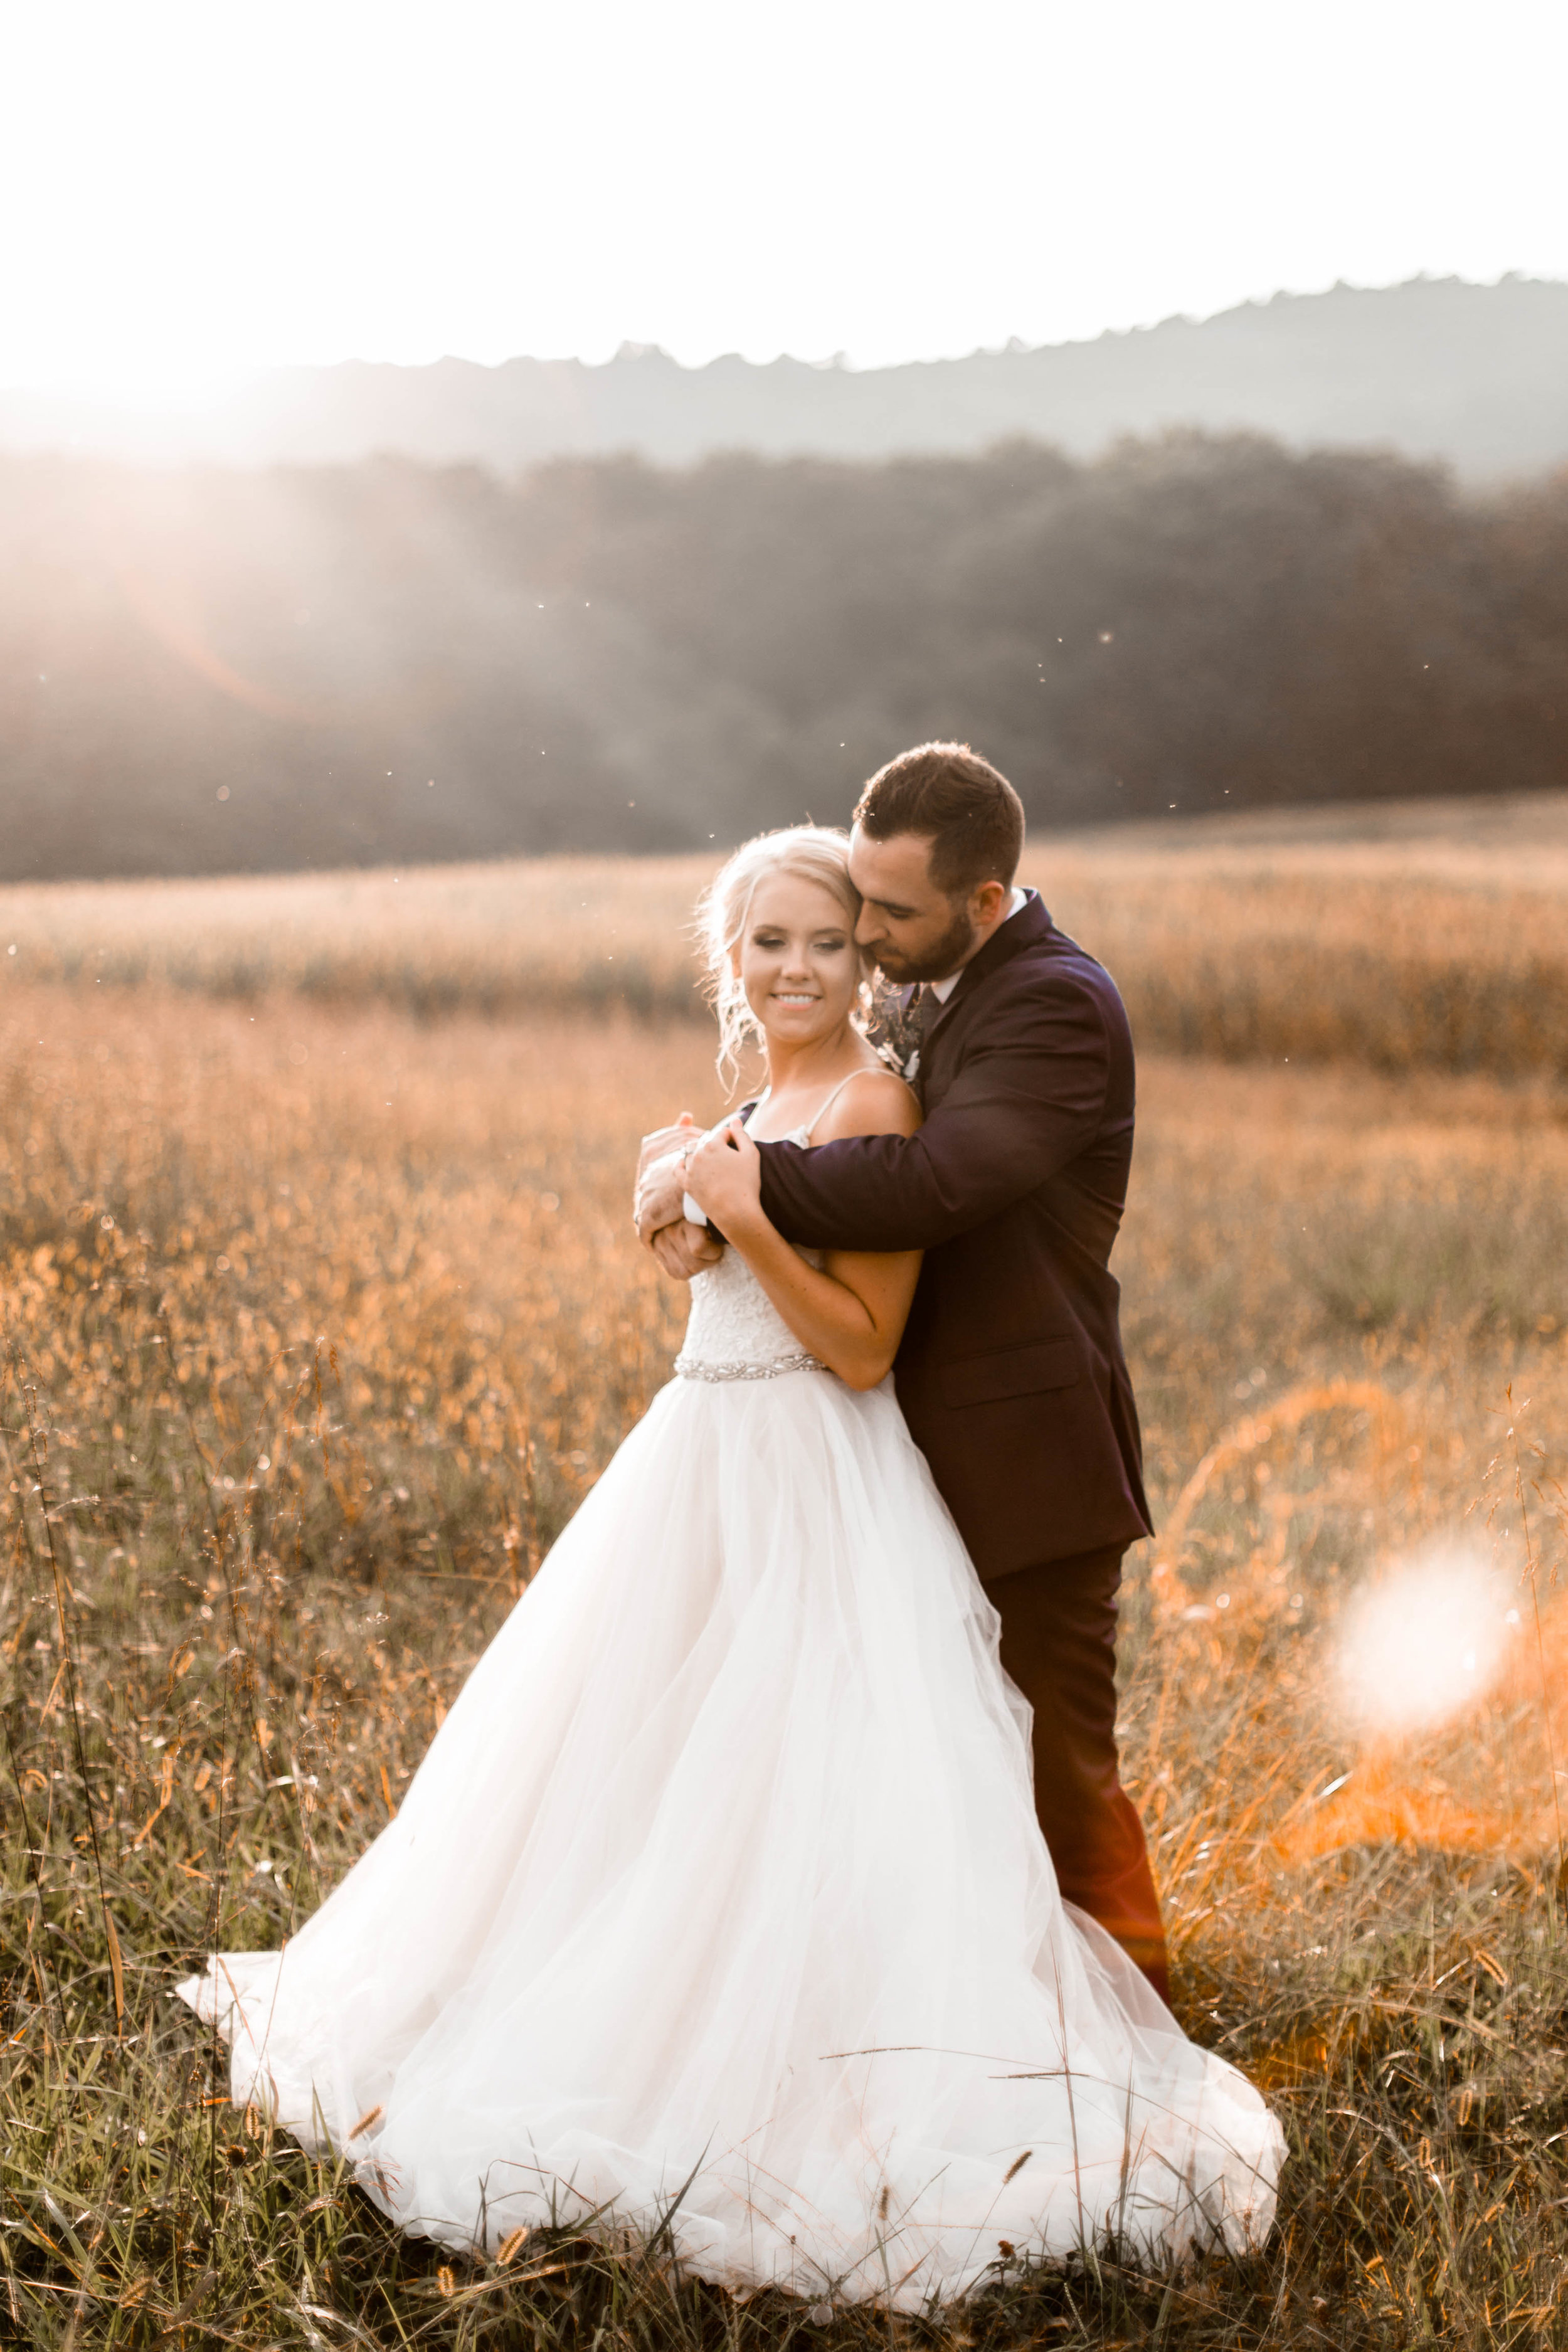 nicole-daacke-photography-intimate-wedding-in-a-lavender-field-washington-state-wedding-photographer-intimate-elopement-golden-lavender-field-wedding-photos-55.jpg